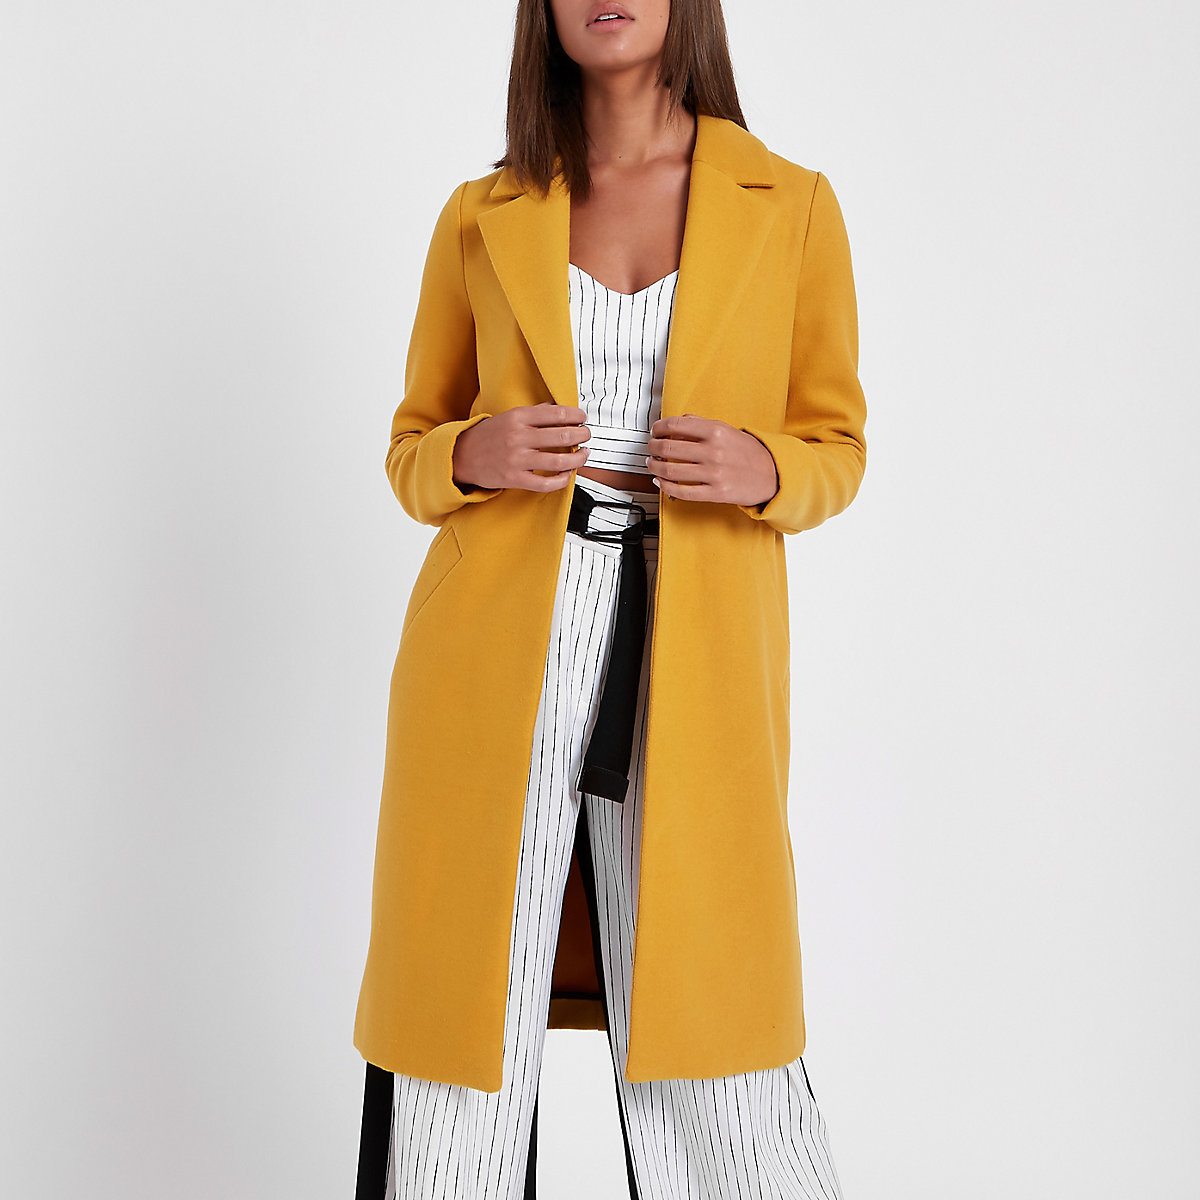 Mustard yellow tailored coat